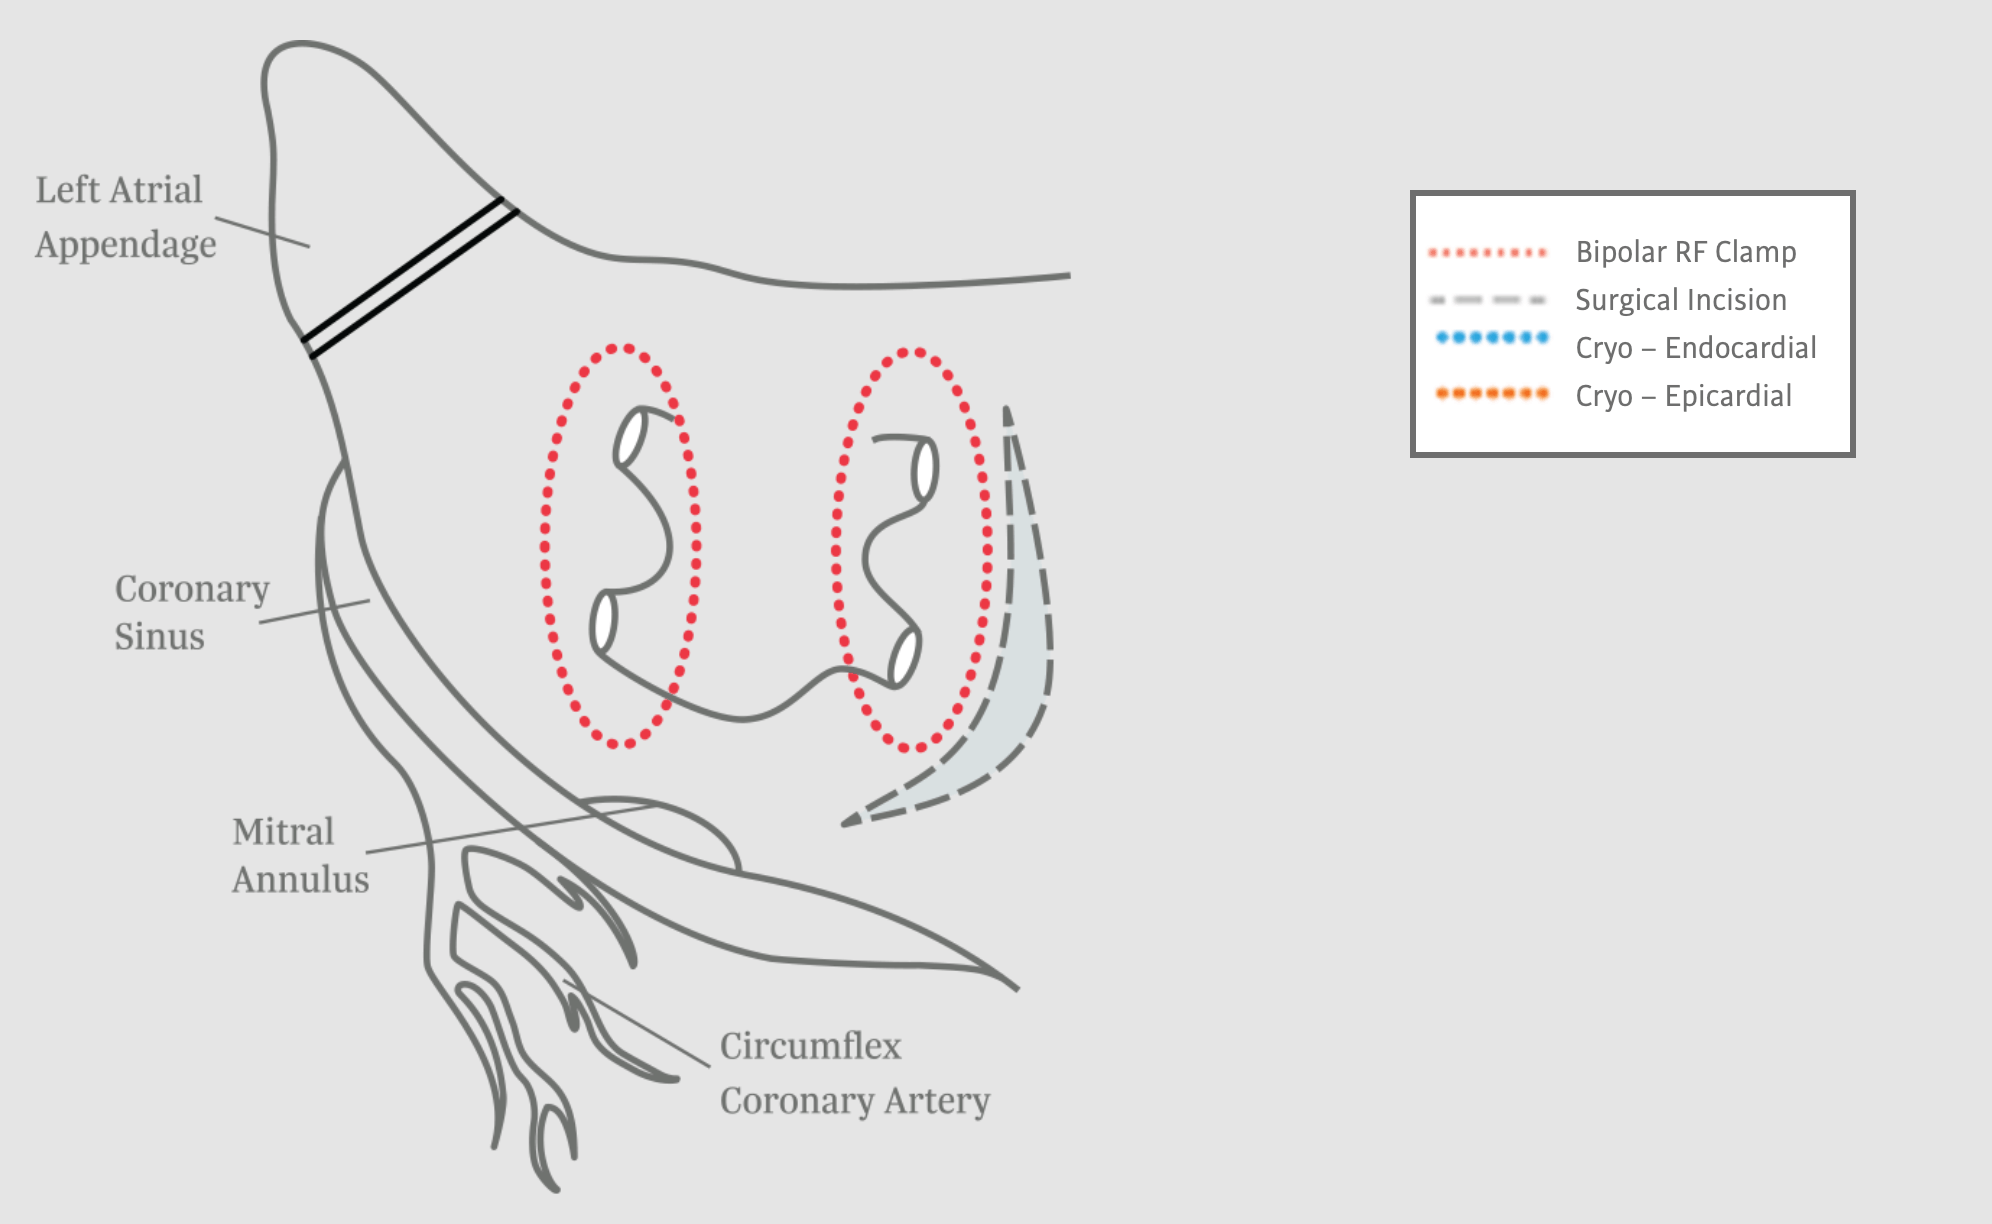 Pulmonary Vein Isolation for Surgical Ablation